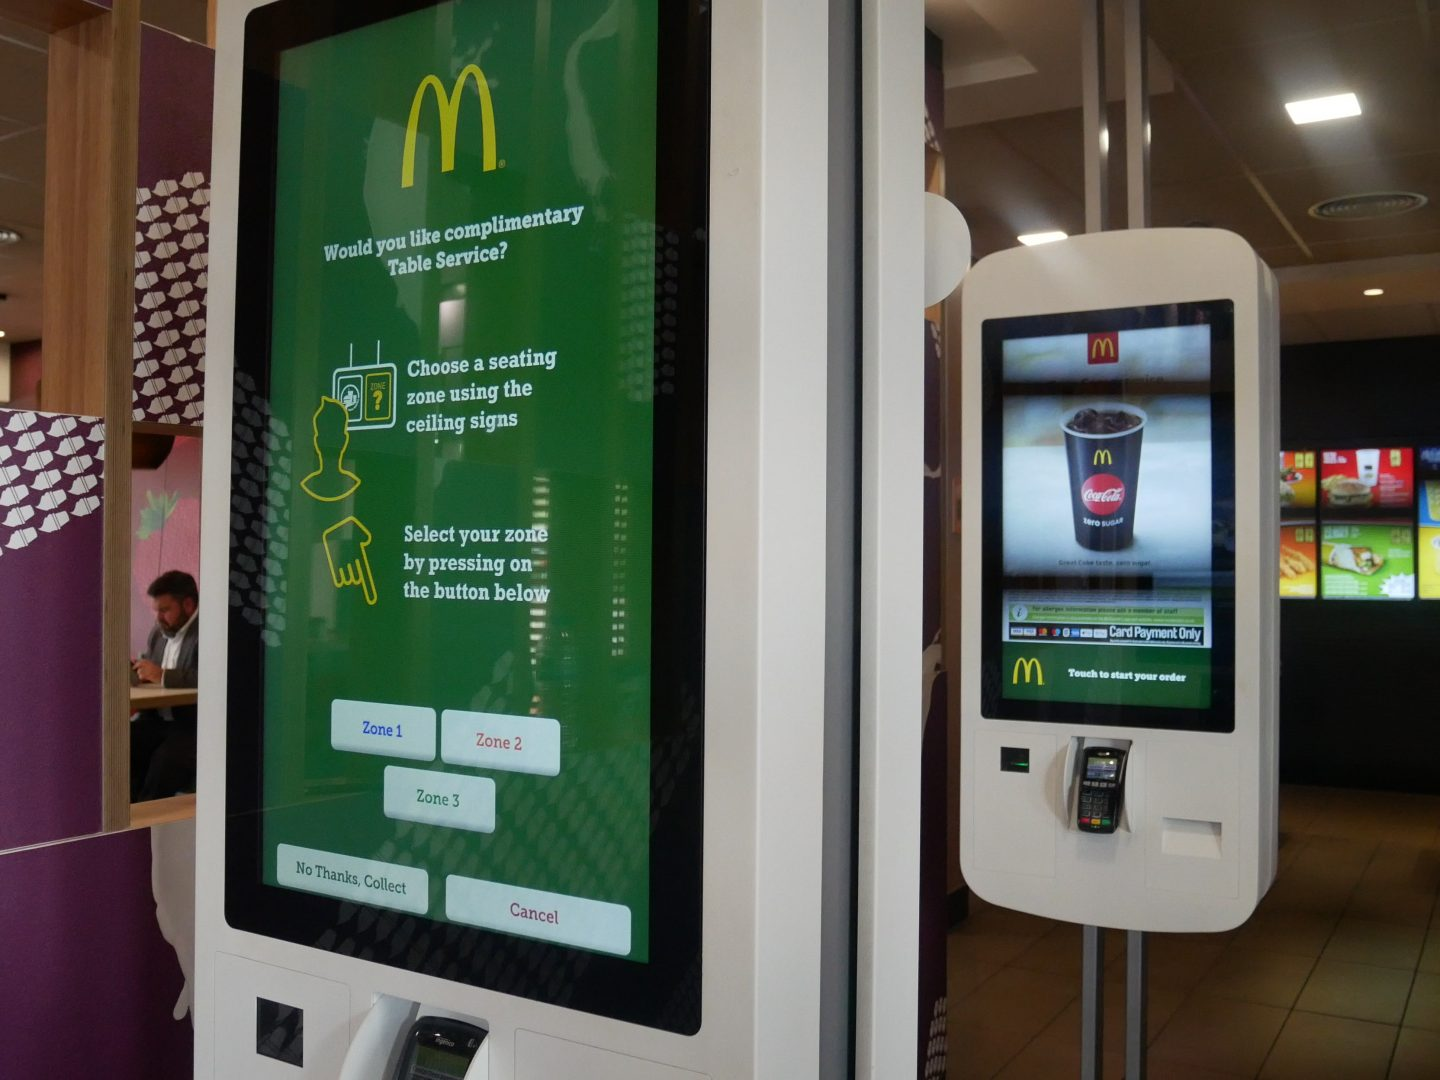 Ordering McDonald's Table Service using the kiosk